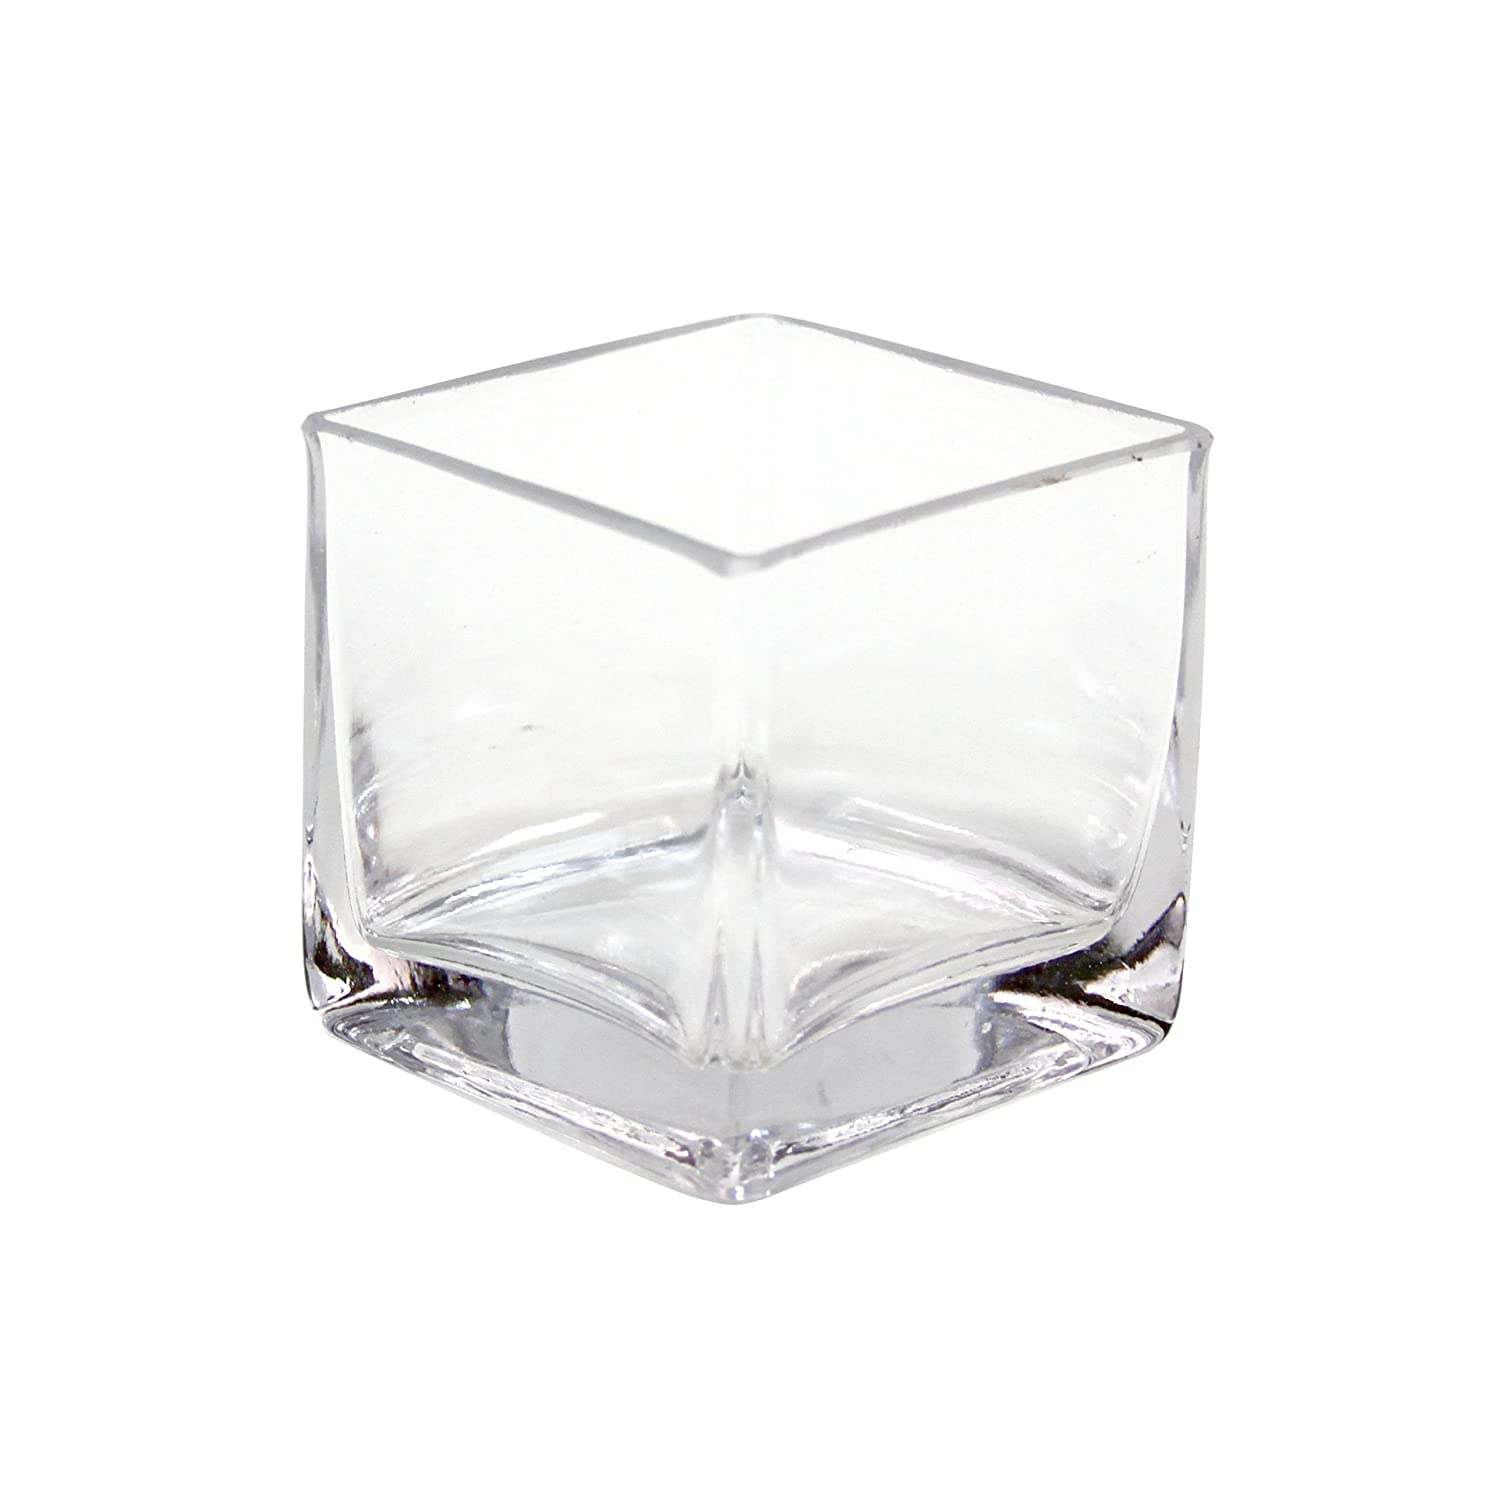 Amazon koyal wholesale 404342 12 pack cube square glass vases amazon koyal wholesale 404342 12 pack cube square glass vases 3 by 3 by 3 inch kitchen dining reviewsmspy